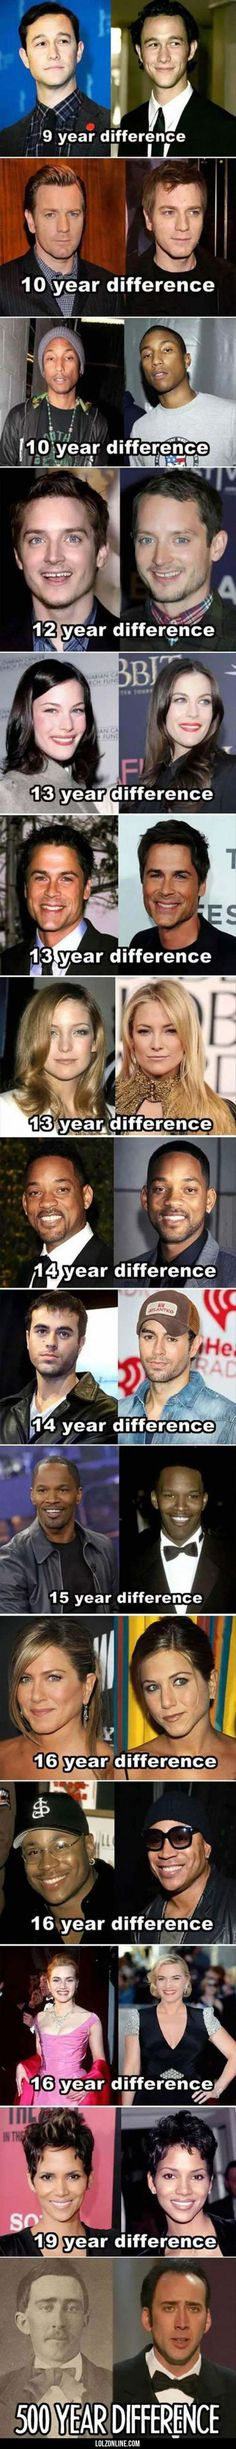 Celebrities Then V Now. Some people just don't age. Then we have tose who age a lot